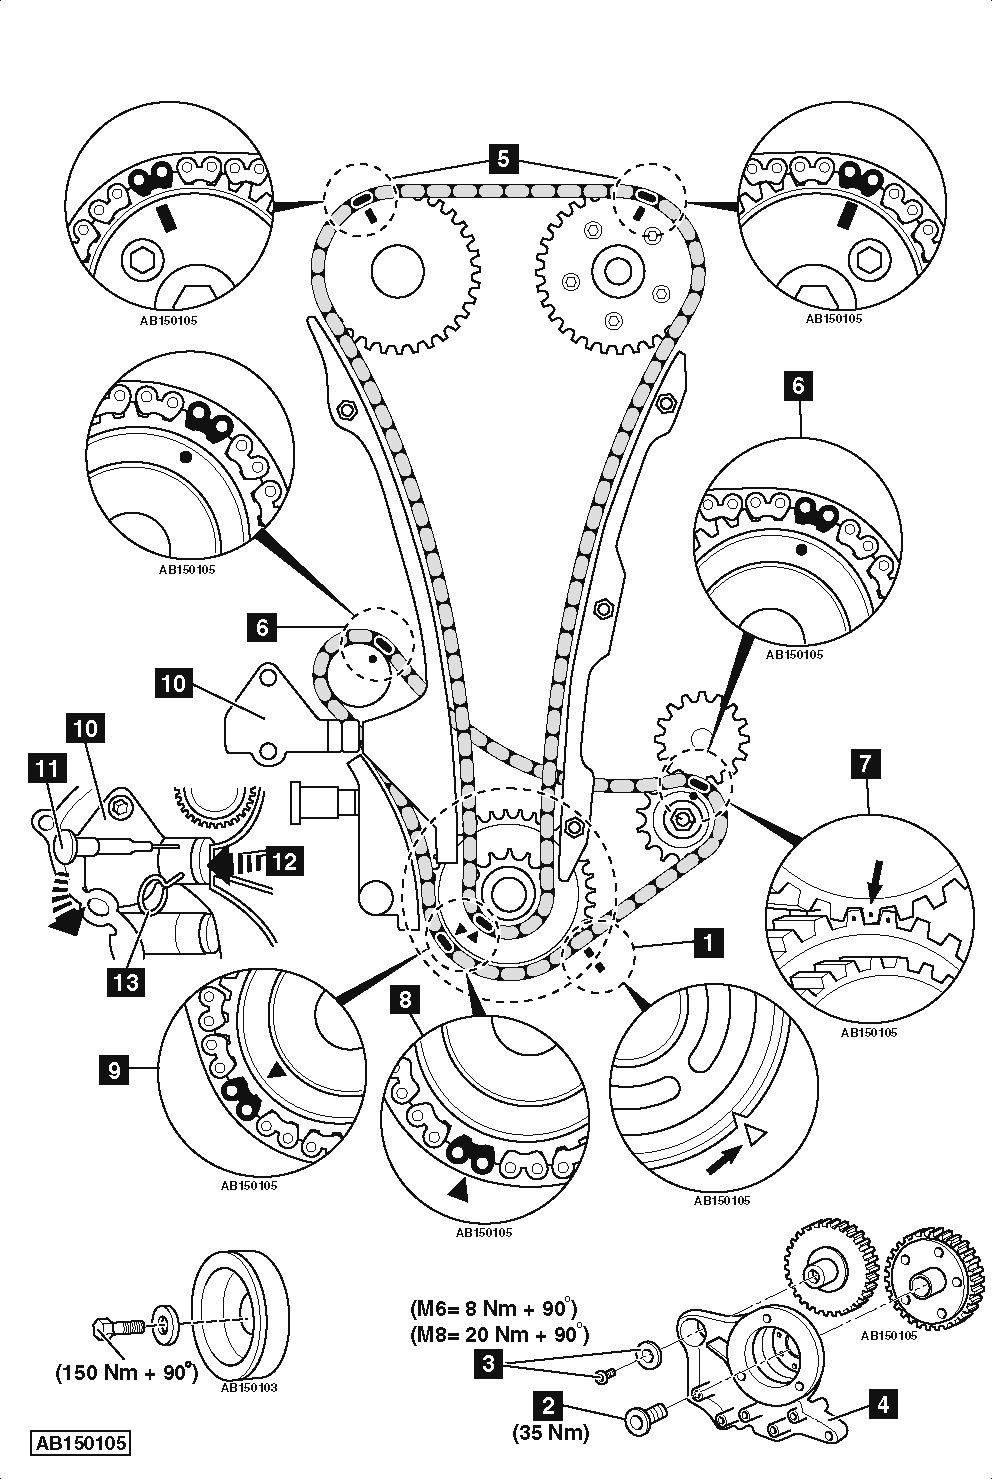 Chevy 3 7 5 Cylinder Engine Diagram on 2004 saab 9 5 aero